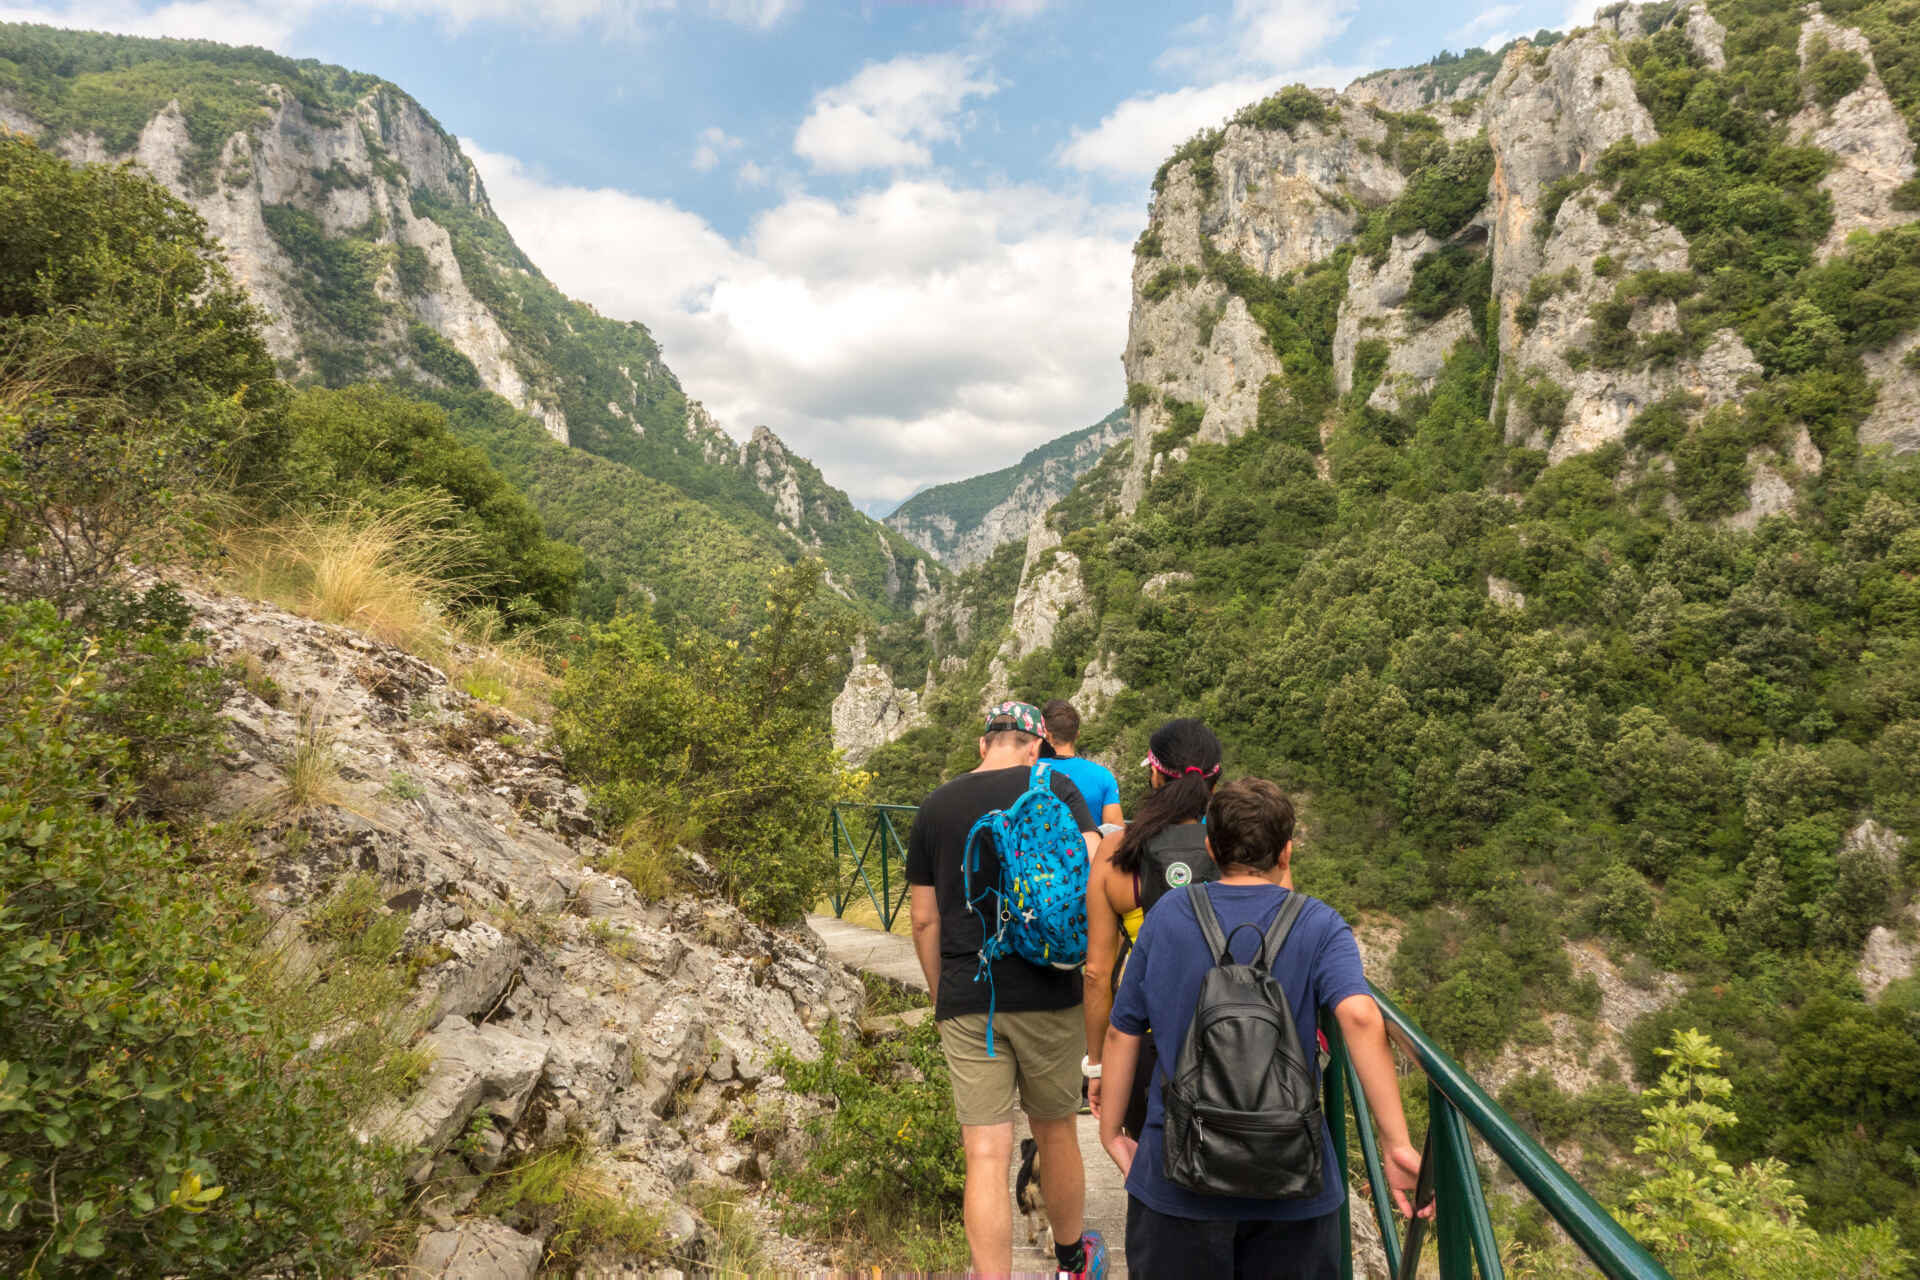 hiking in Greece through the Enipeas Canyon that starts in Litochoro.